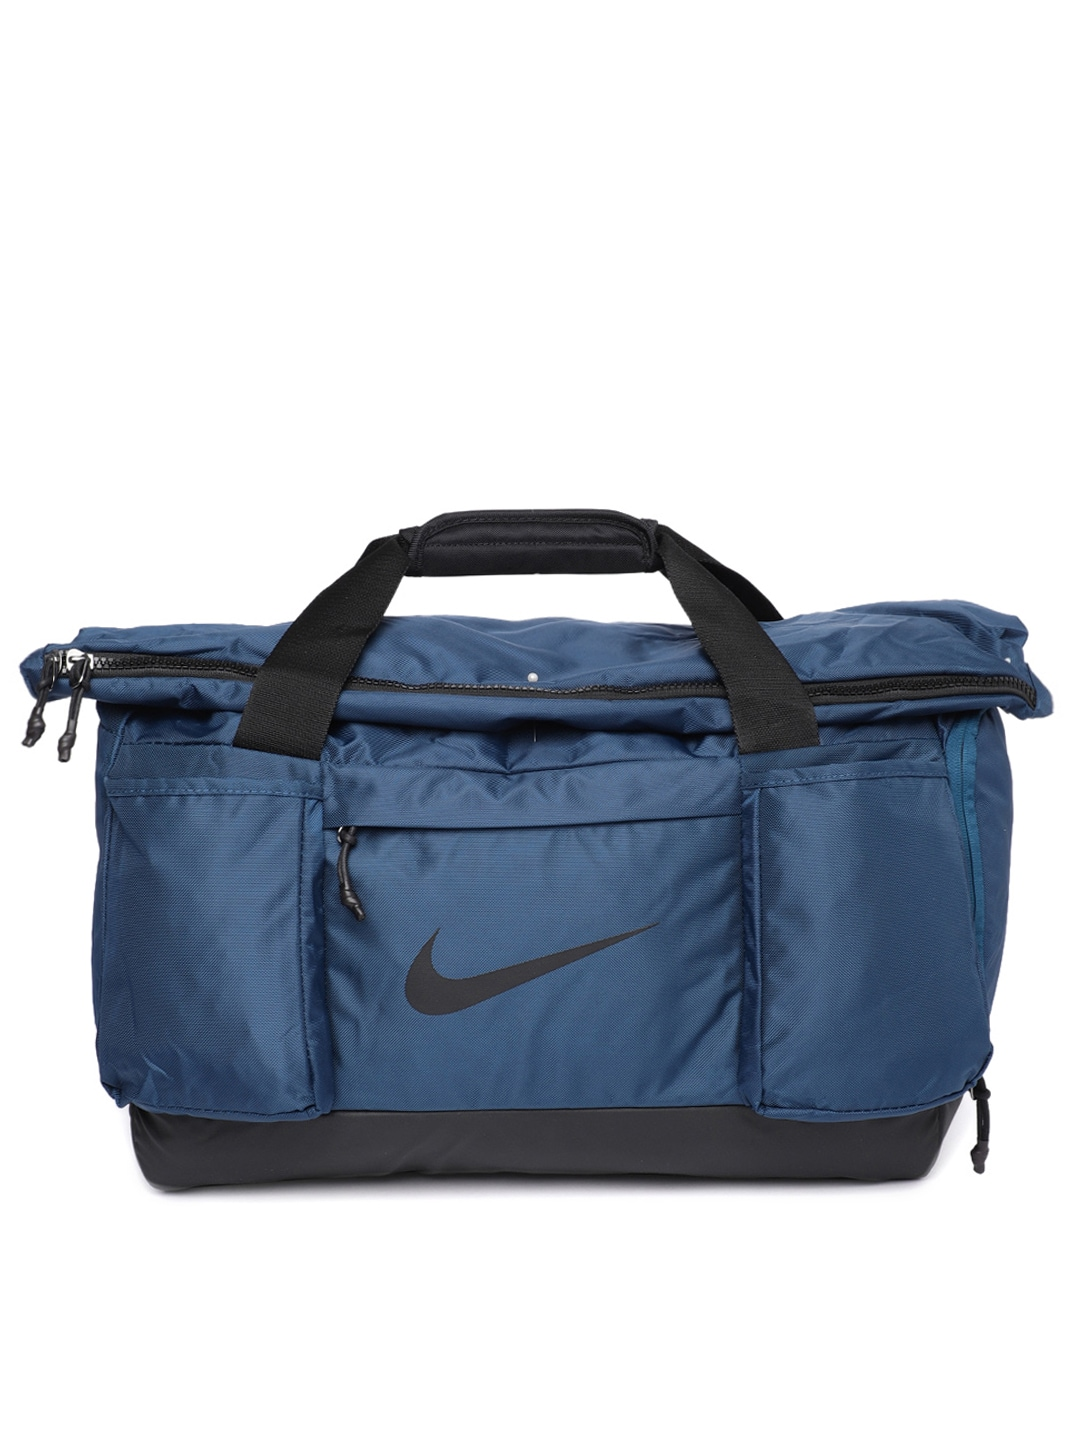 c98c0aef5d7b Nike Bags Mens - Buy Nike Bags Mens online in India